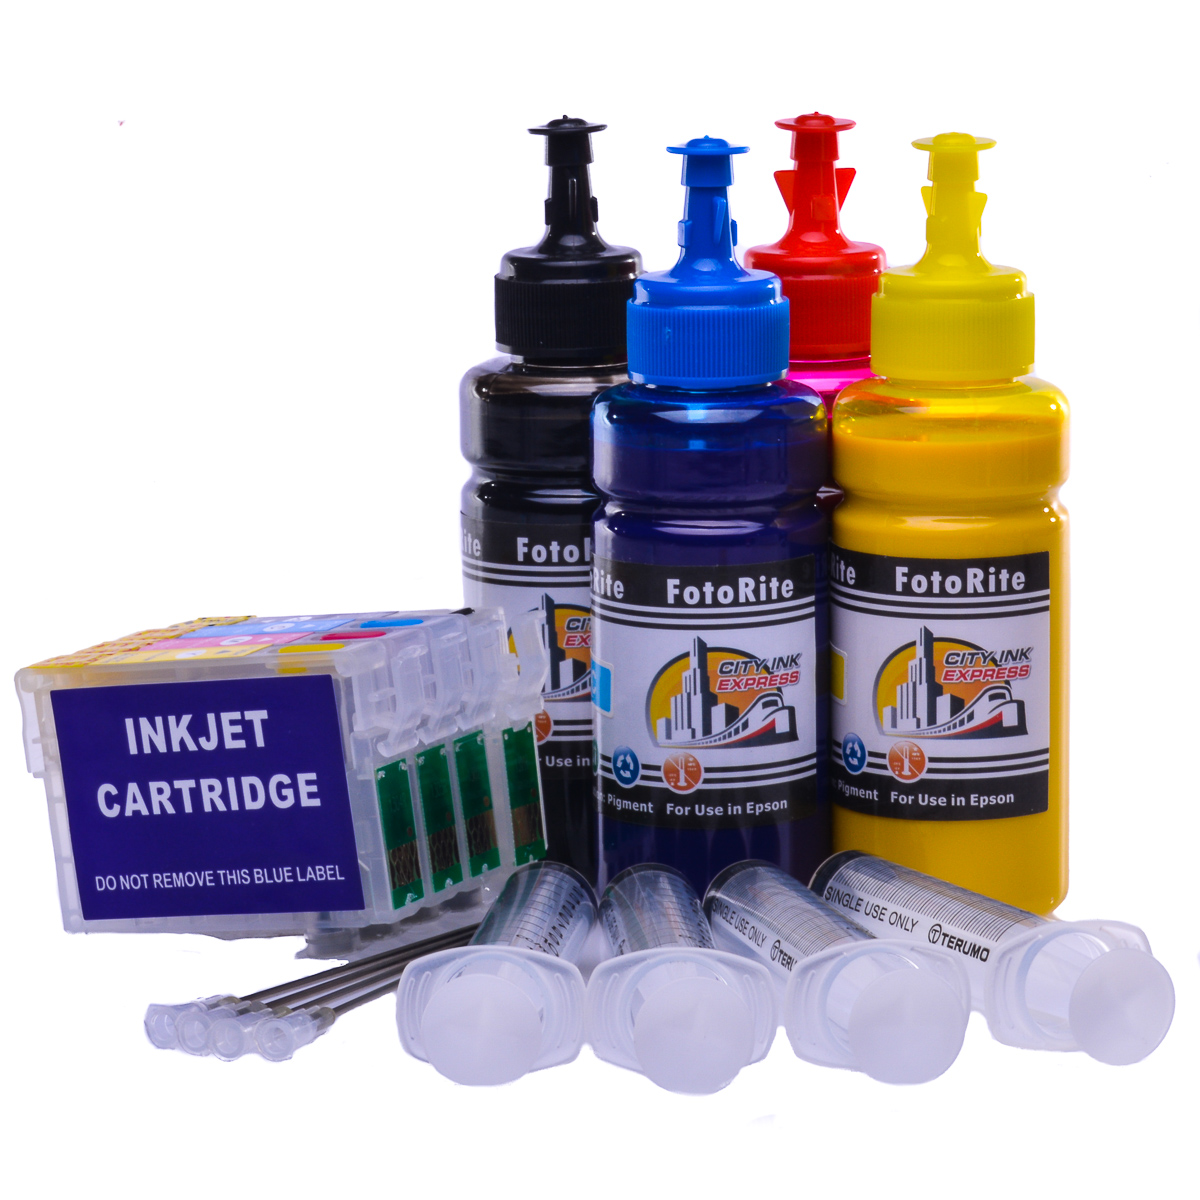 Refillable pigment Cheap printer cartridges for Epson WF-2530wf C13T16364010 T1636 Multipack